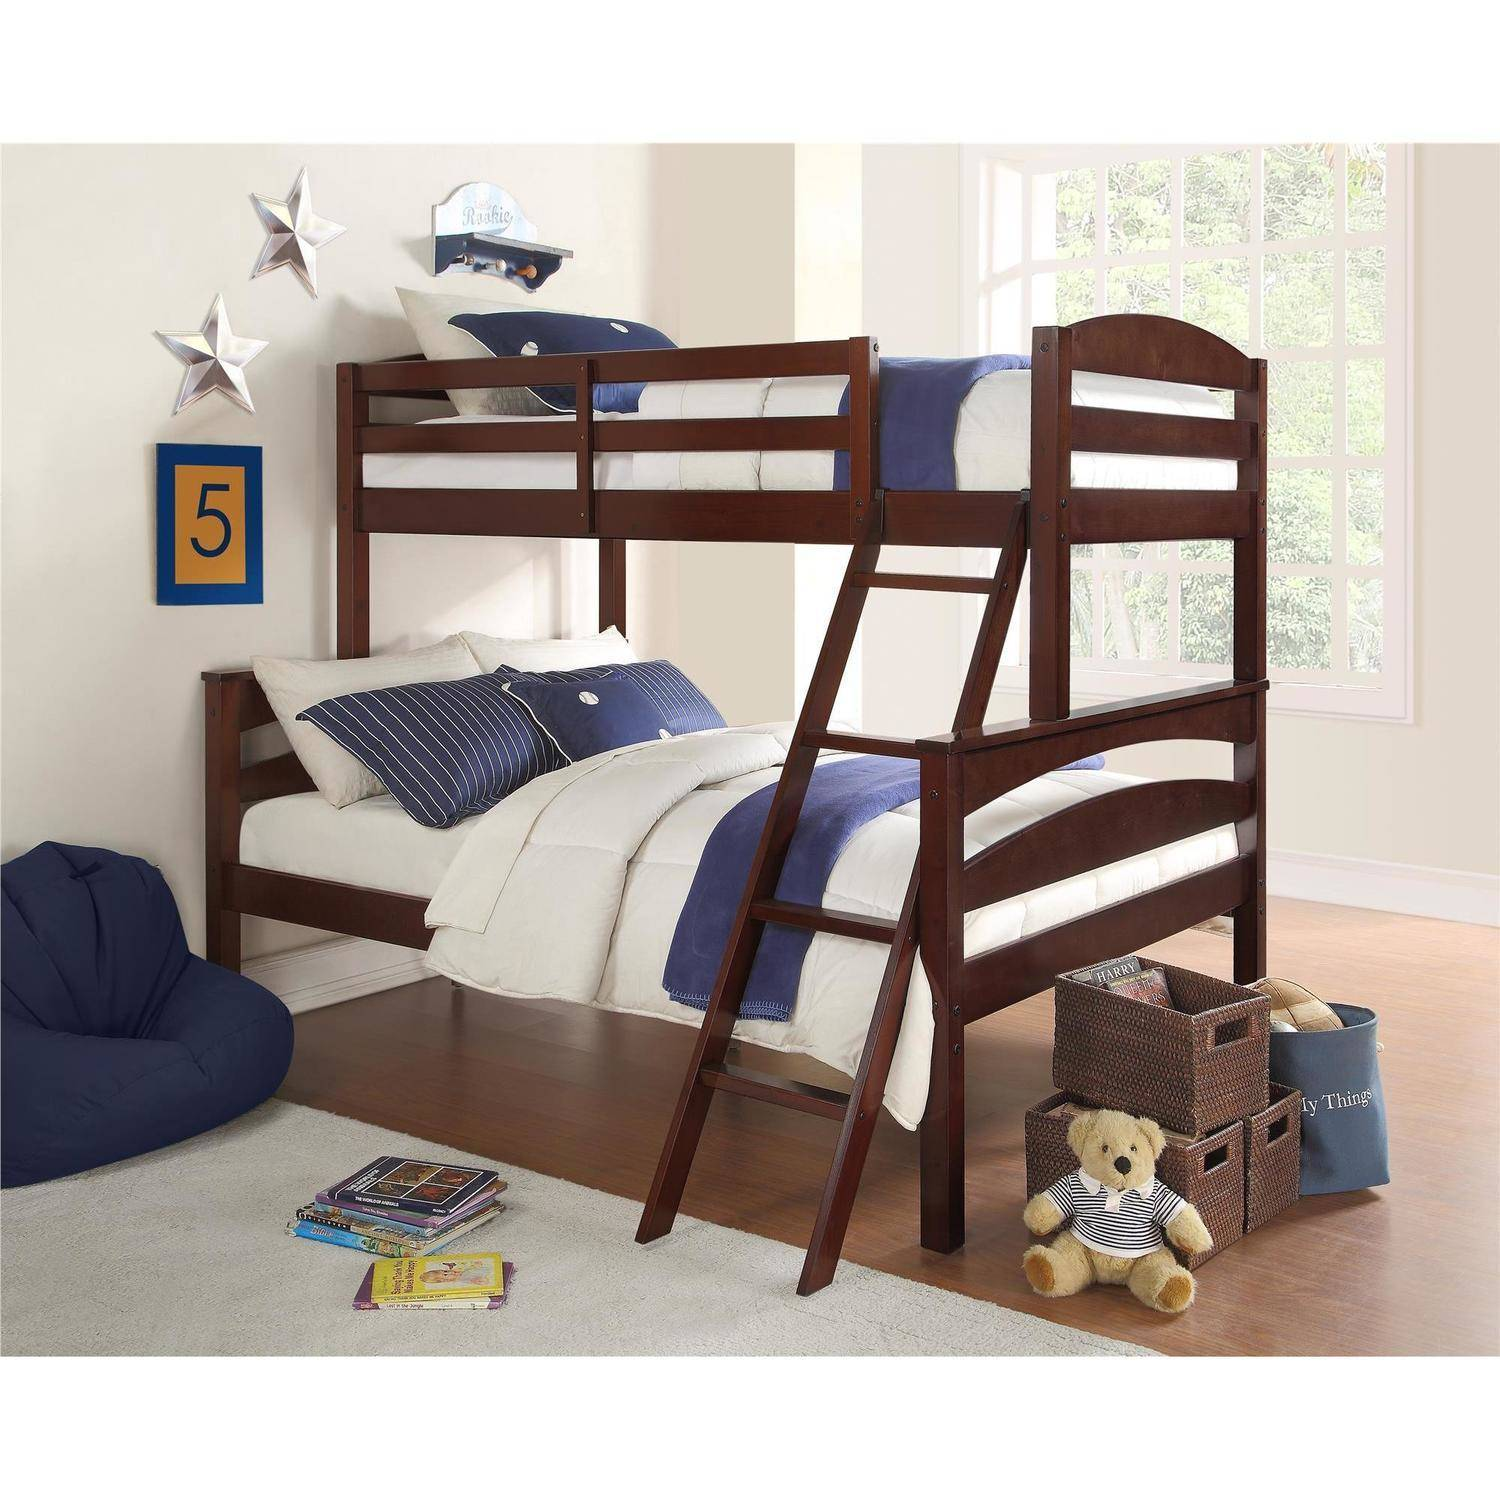 Better Homes and Gardens Leighton Twin-Over-Full Bunk Bed, Multiple Colors by Dorel Asia